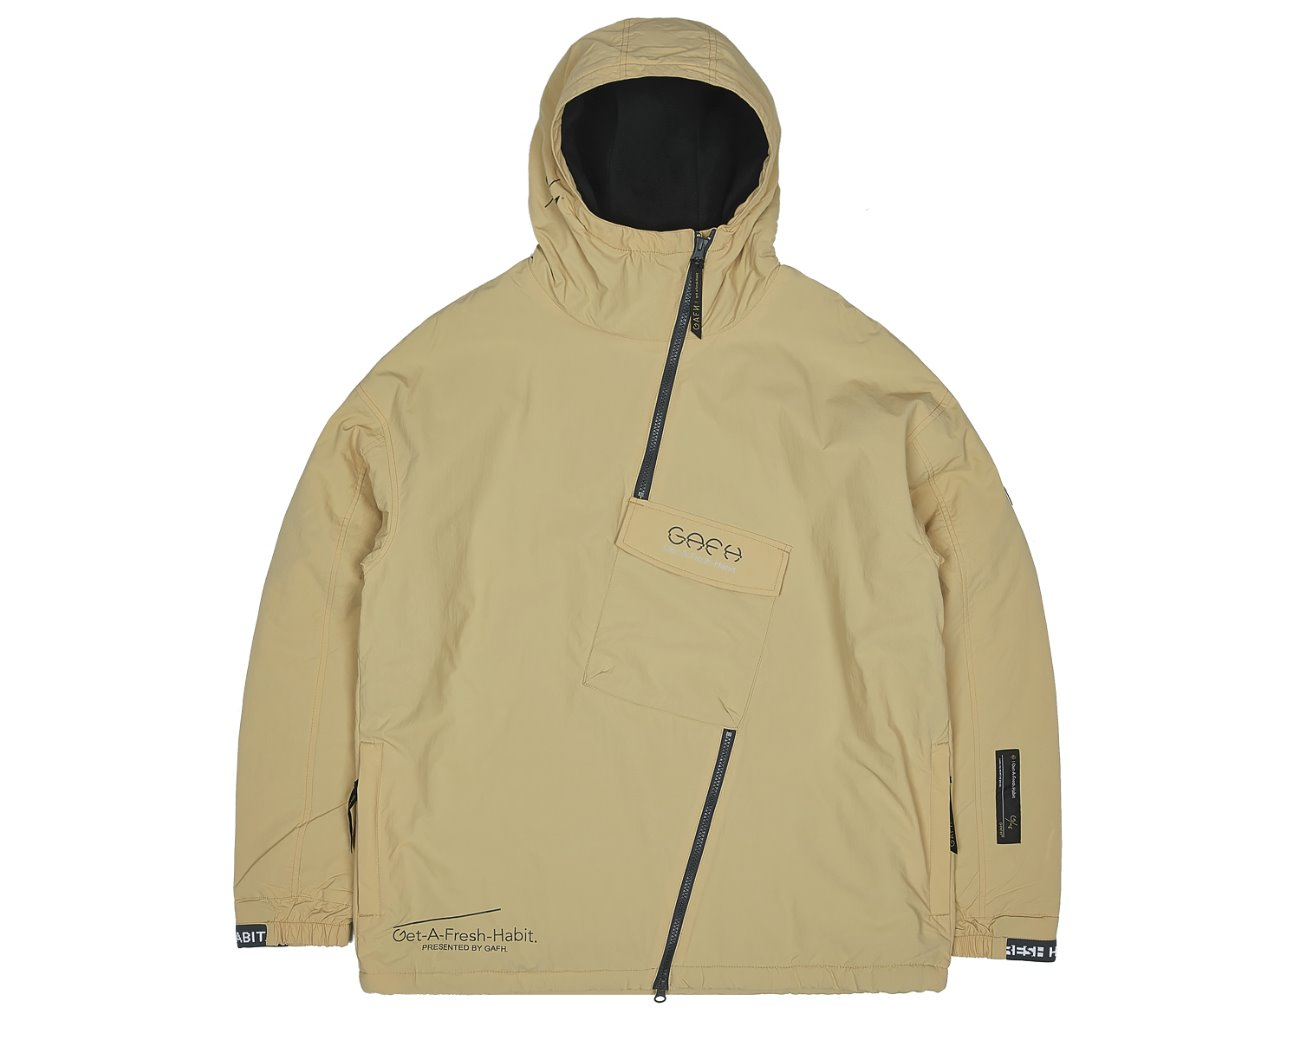 SIDE ZIP UP PULLOVER WHEAT / GAFH